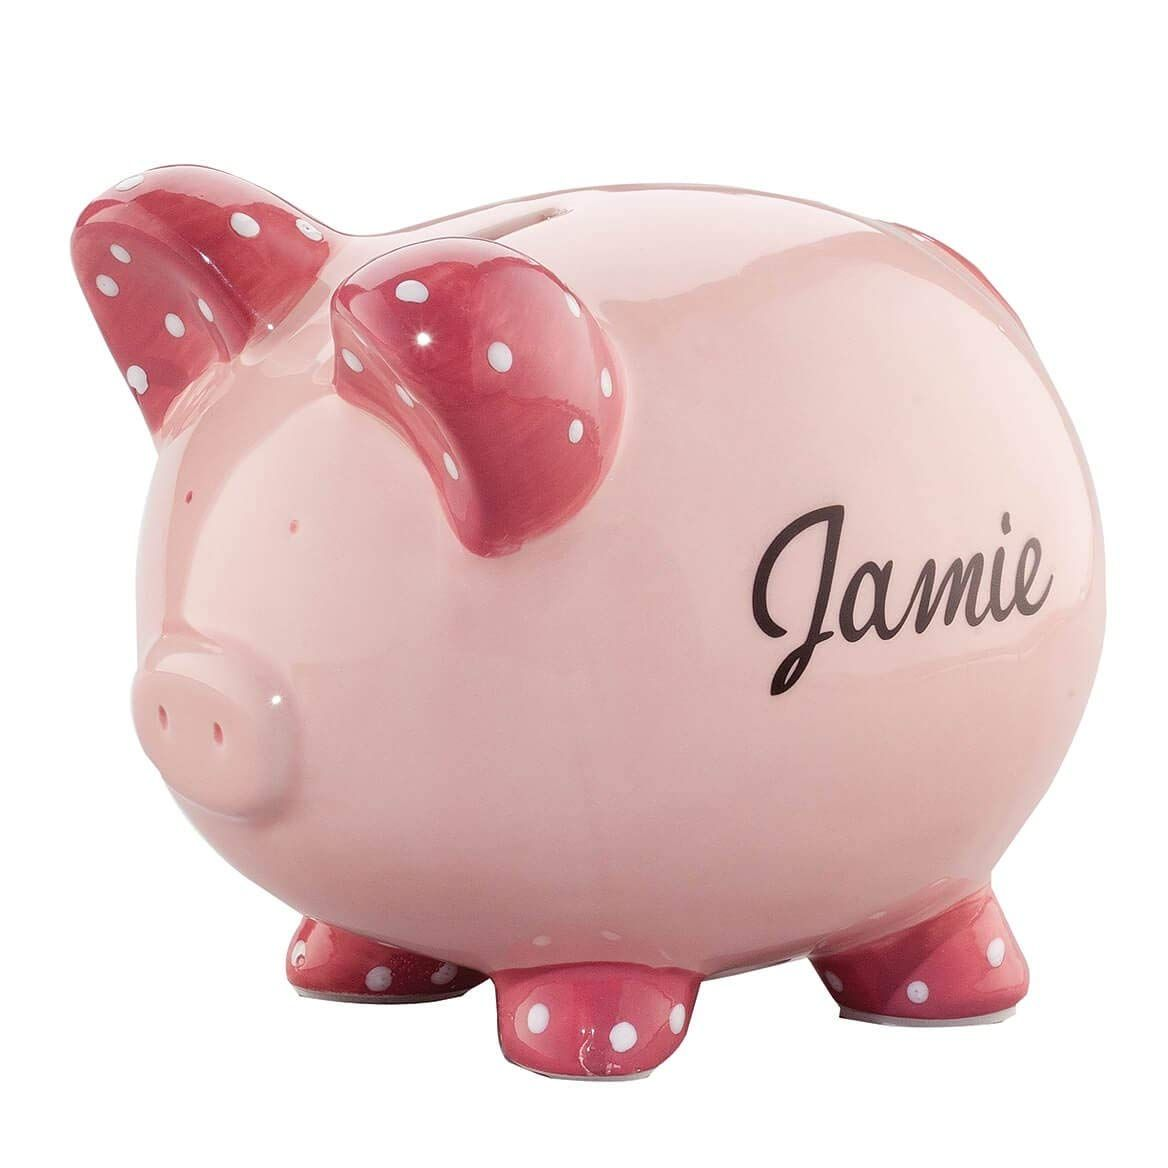 Ceramic Piggy Bank For Kids Gift Giftidea Cool Funny Geek